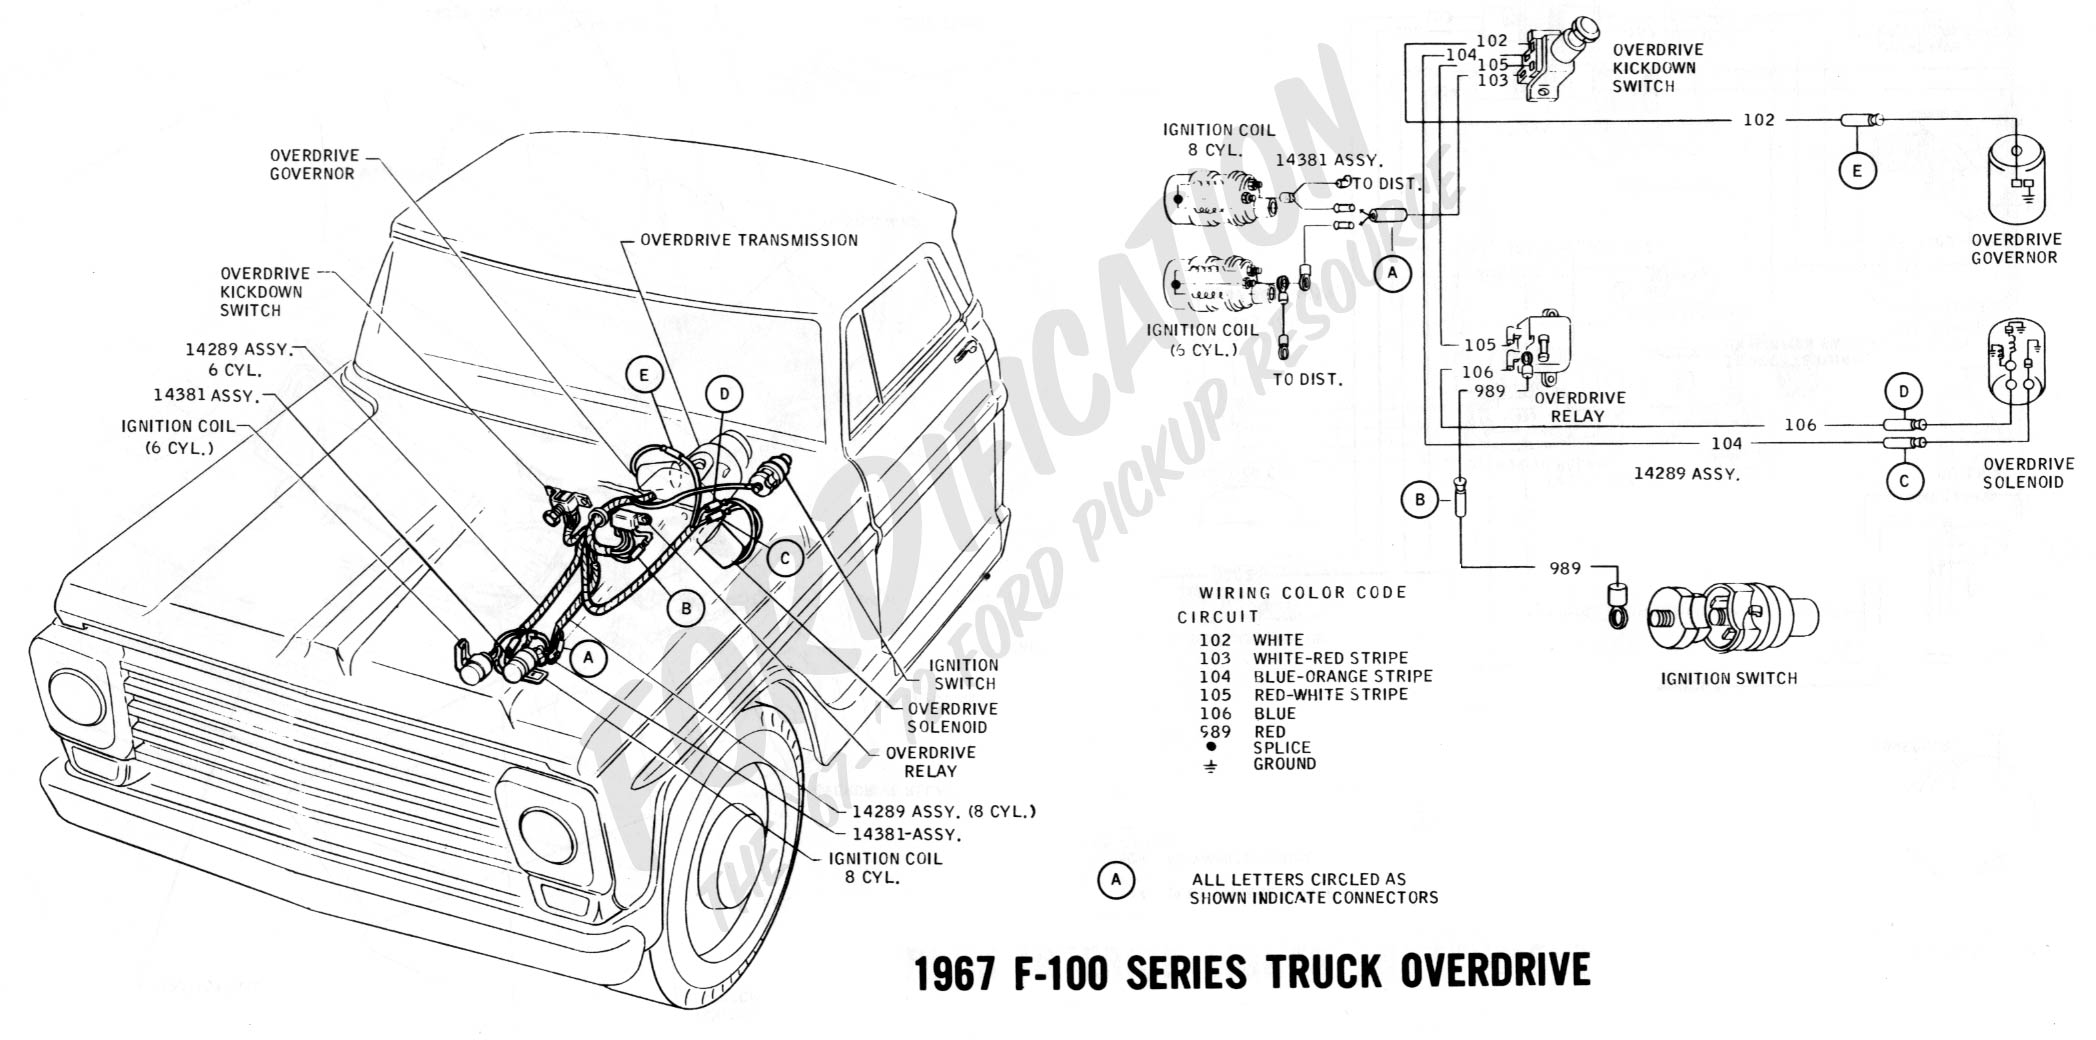 1974 amc javelin wiring diagram